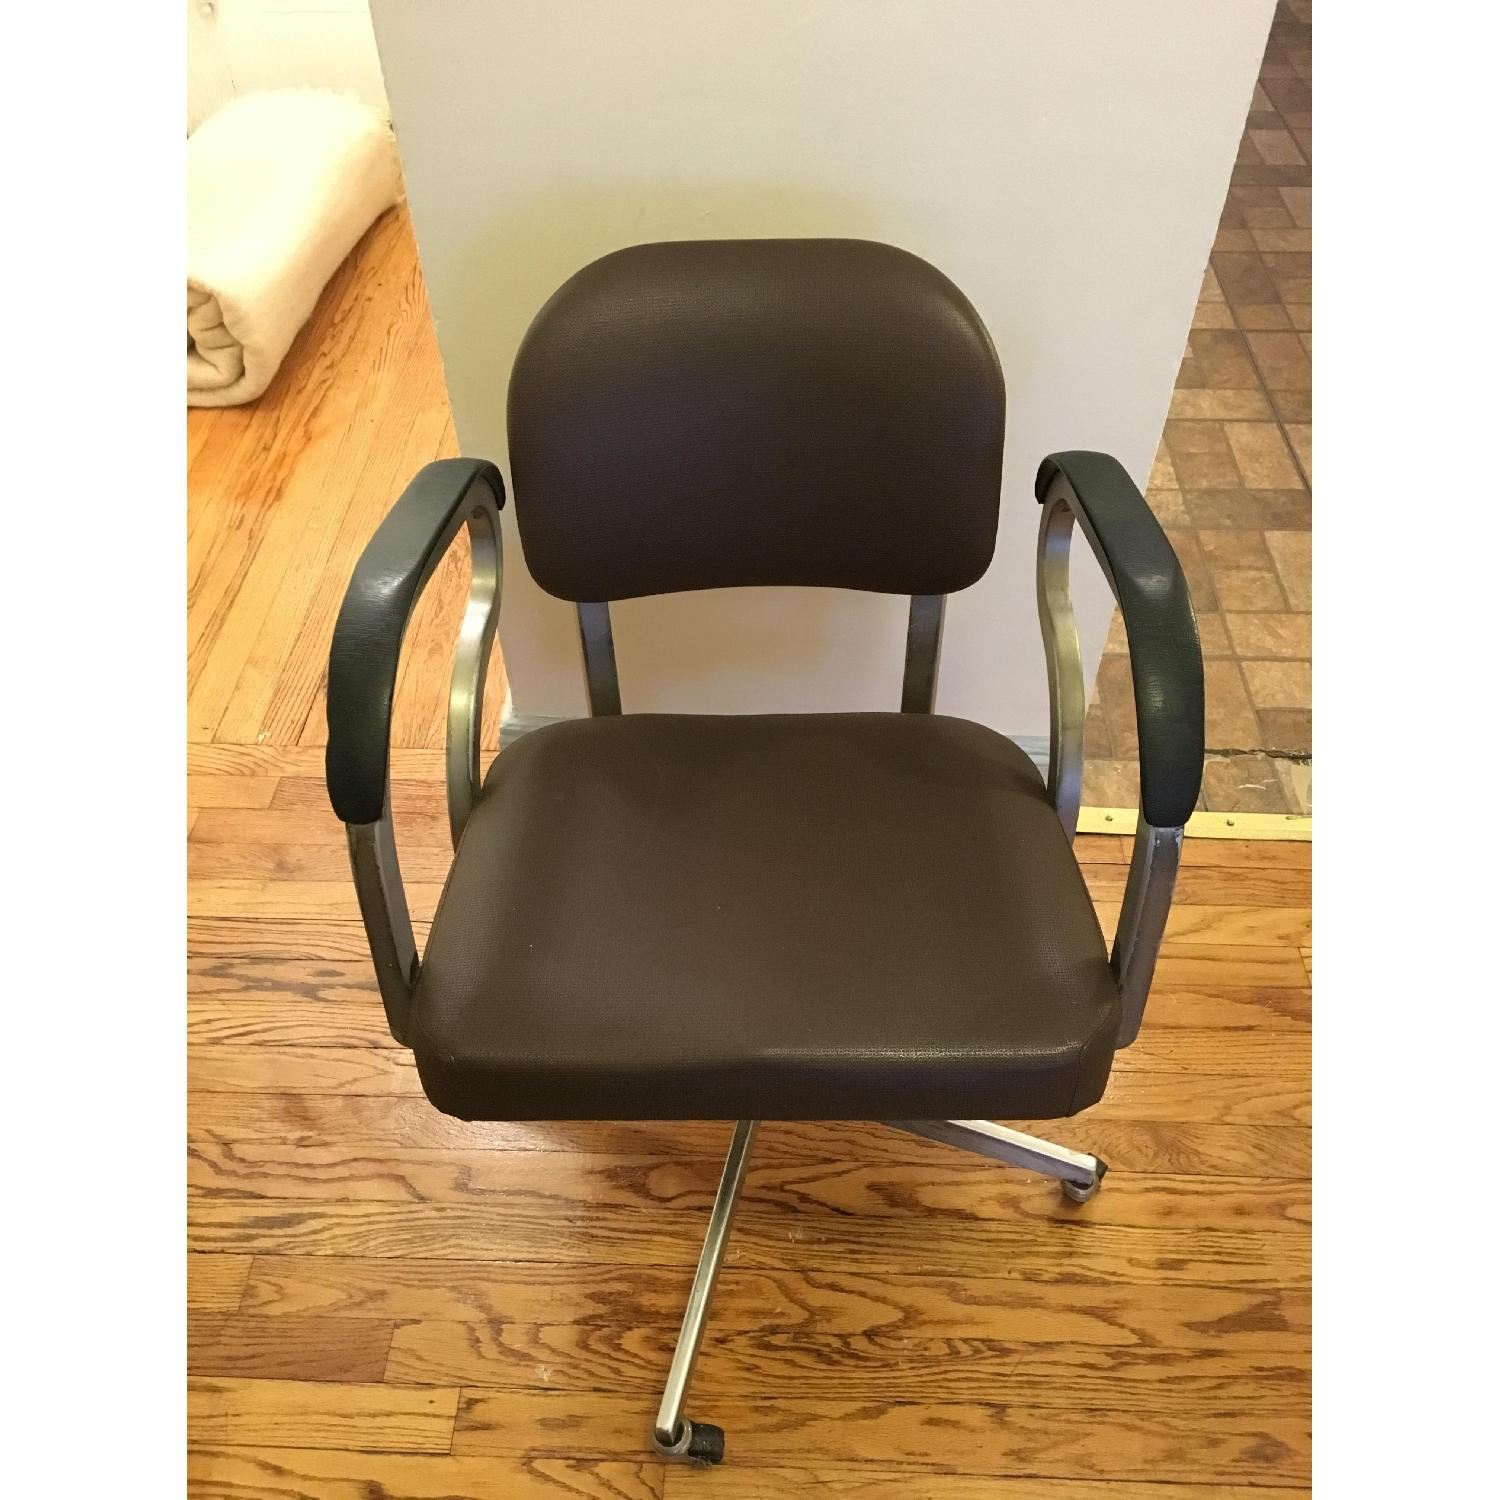 Goodform Vintage Rolling Office Chair w/ Adjustable Height-1